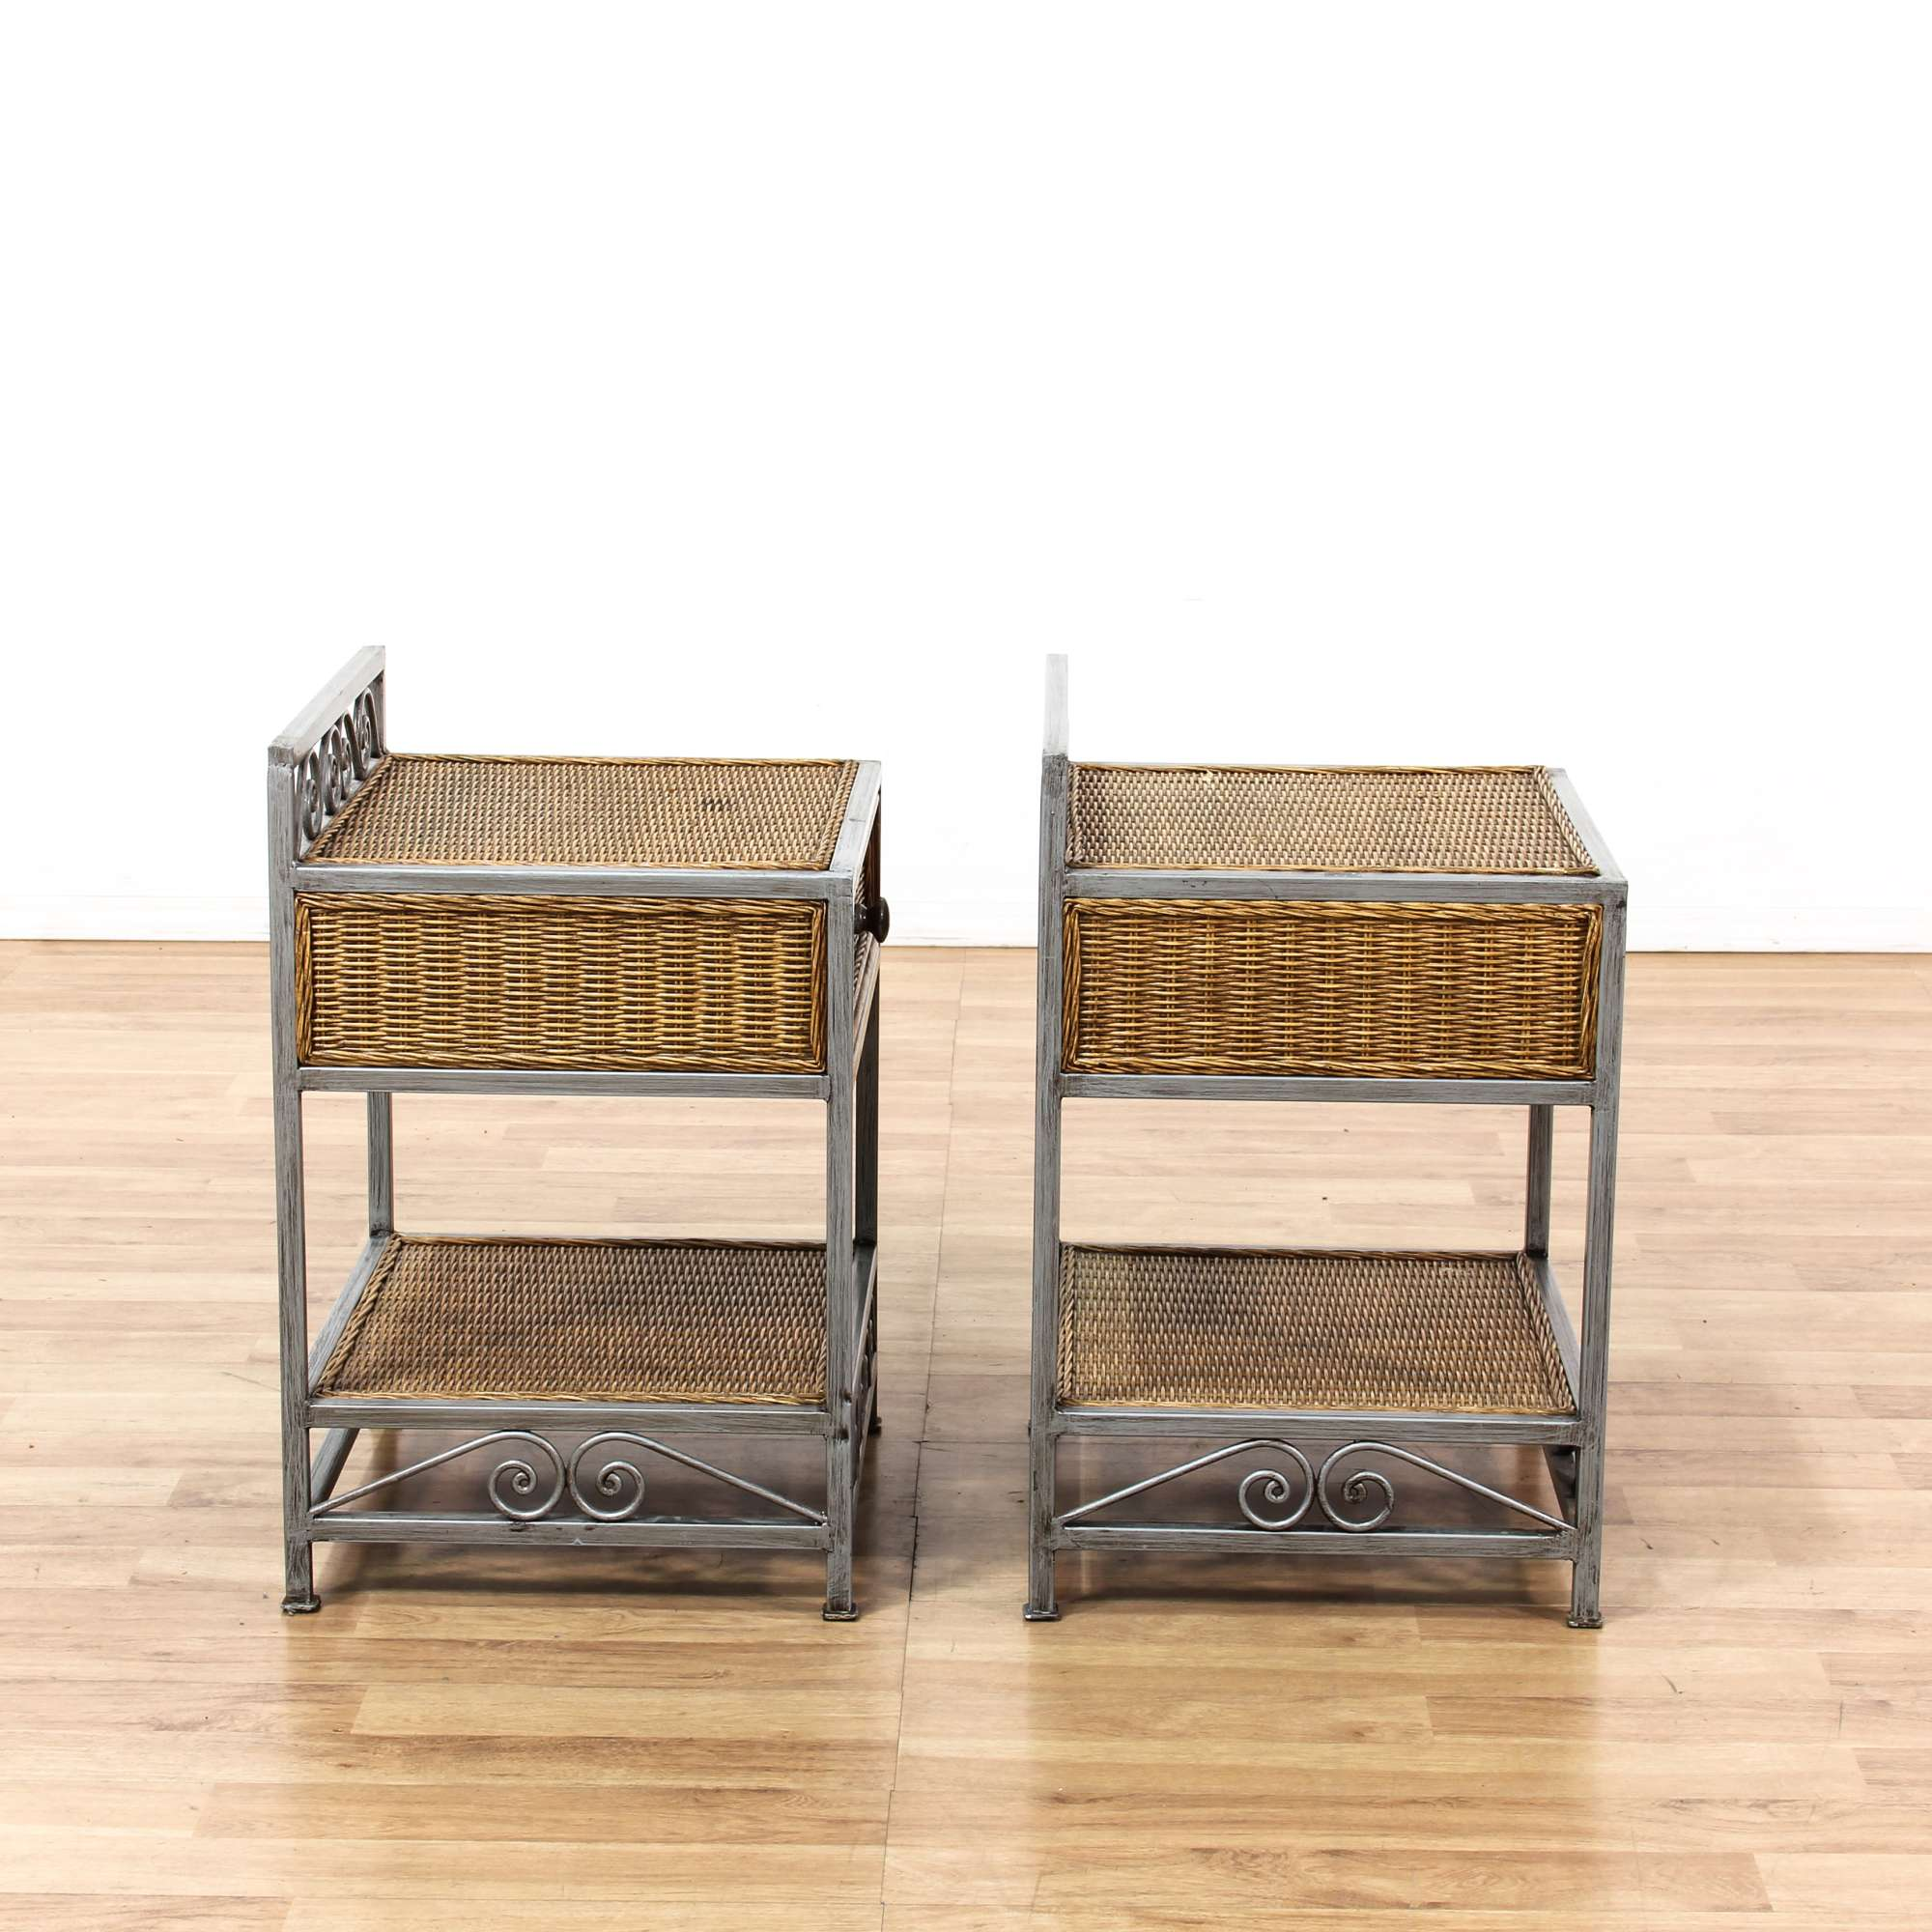 Pair Of Wicker Nightstands w/ Iron Base | Loveseat Vintage Furniture San Diego & Los Angeles